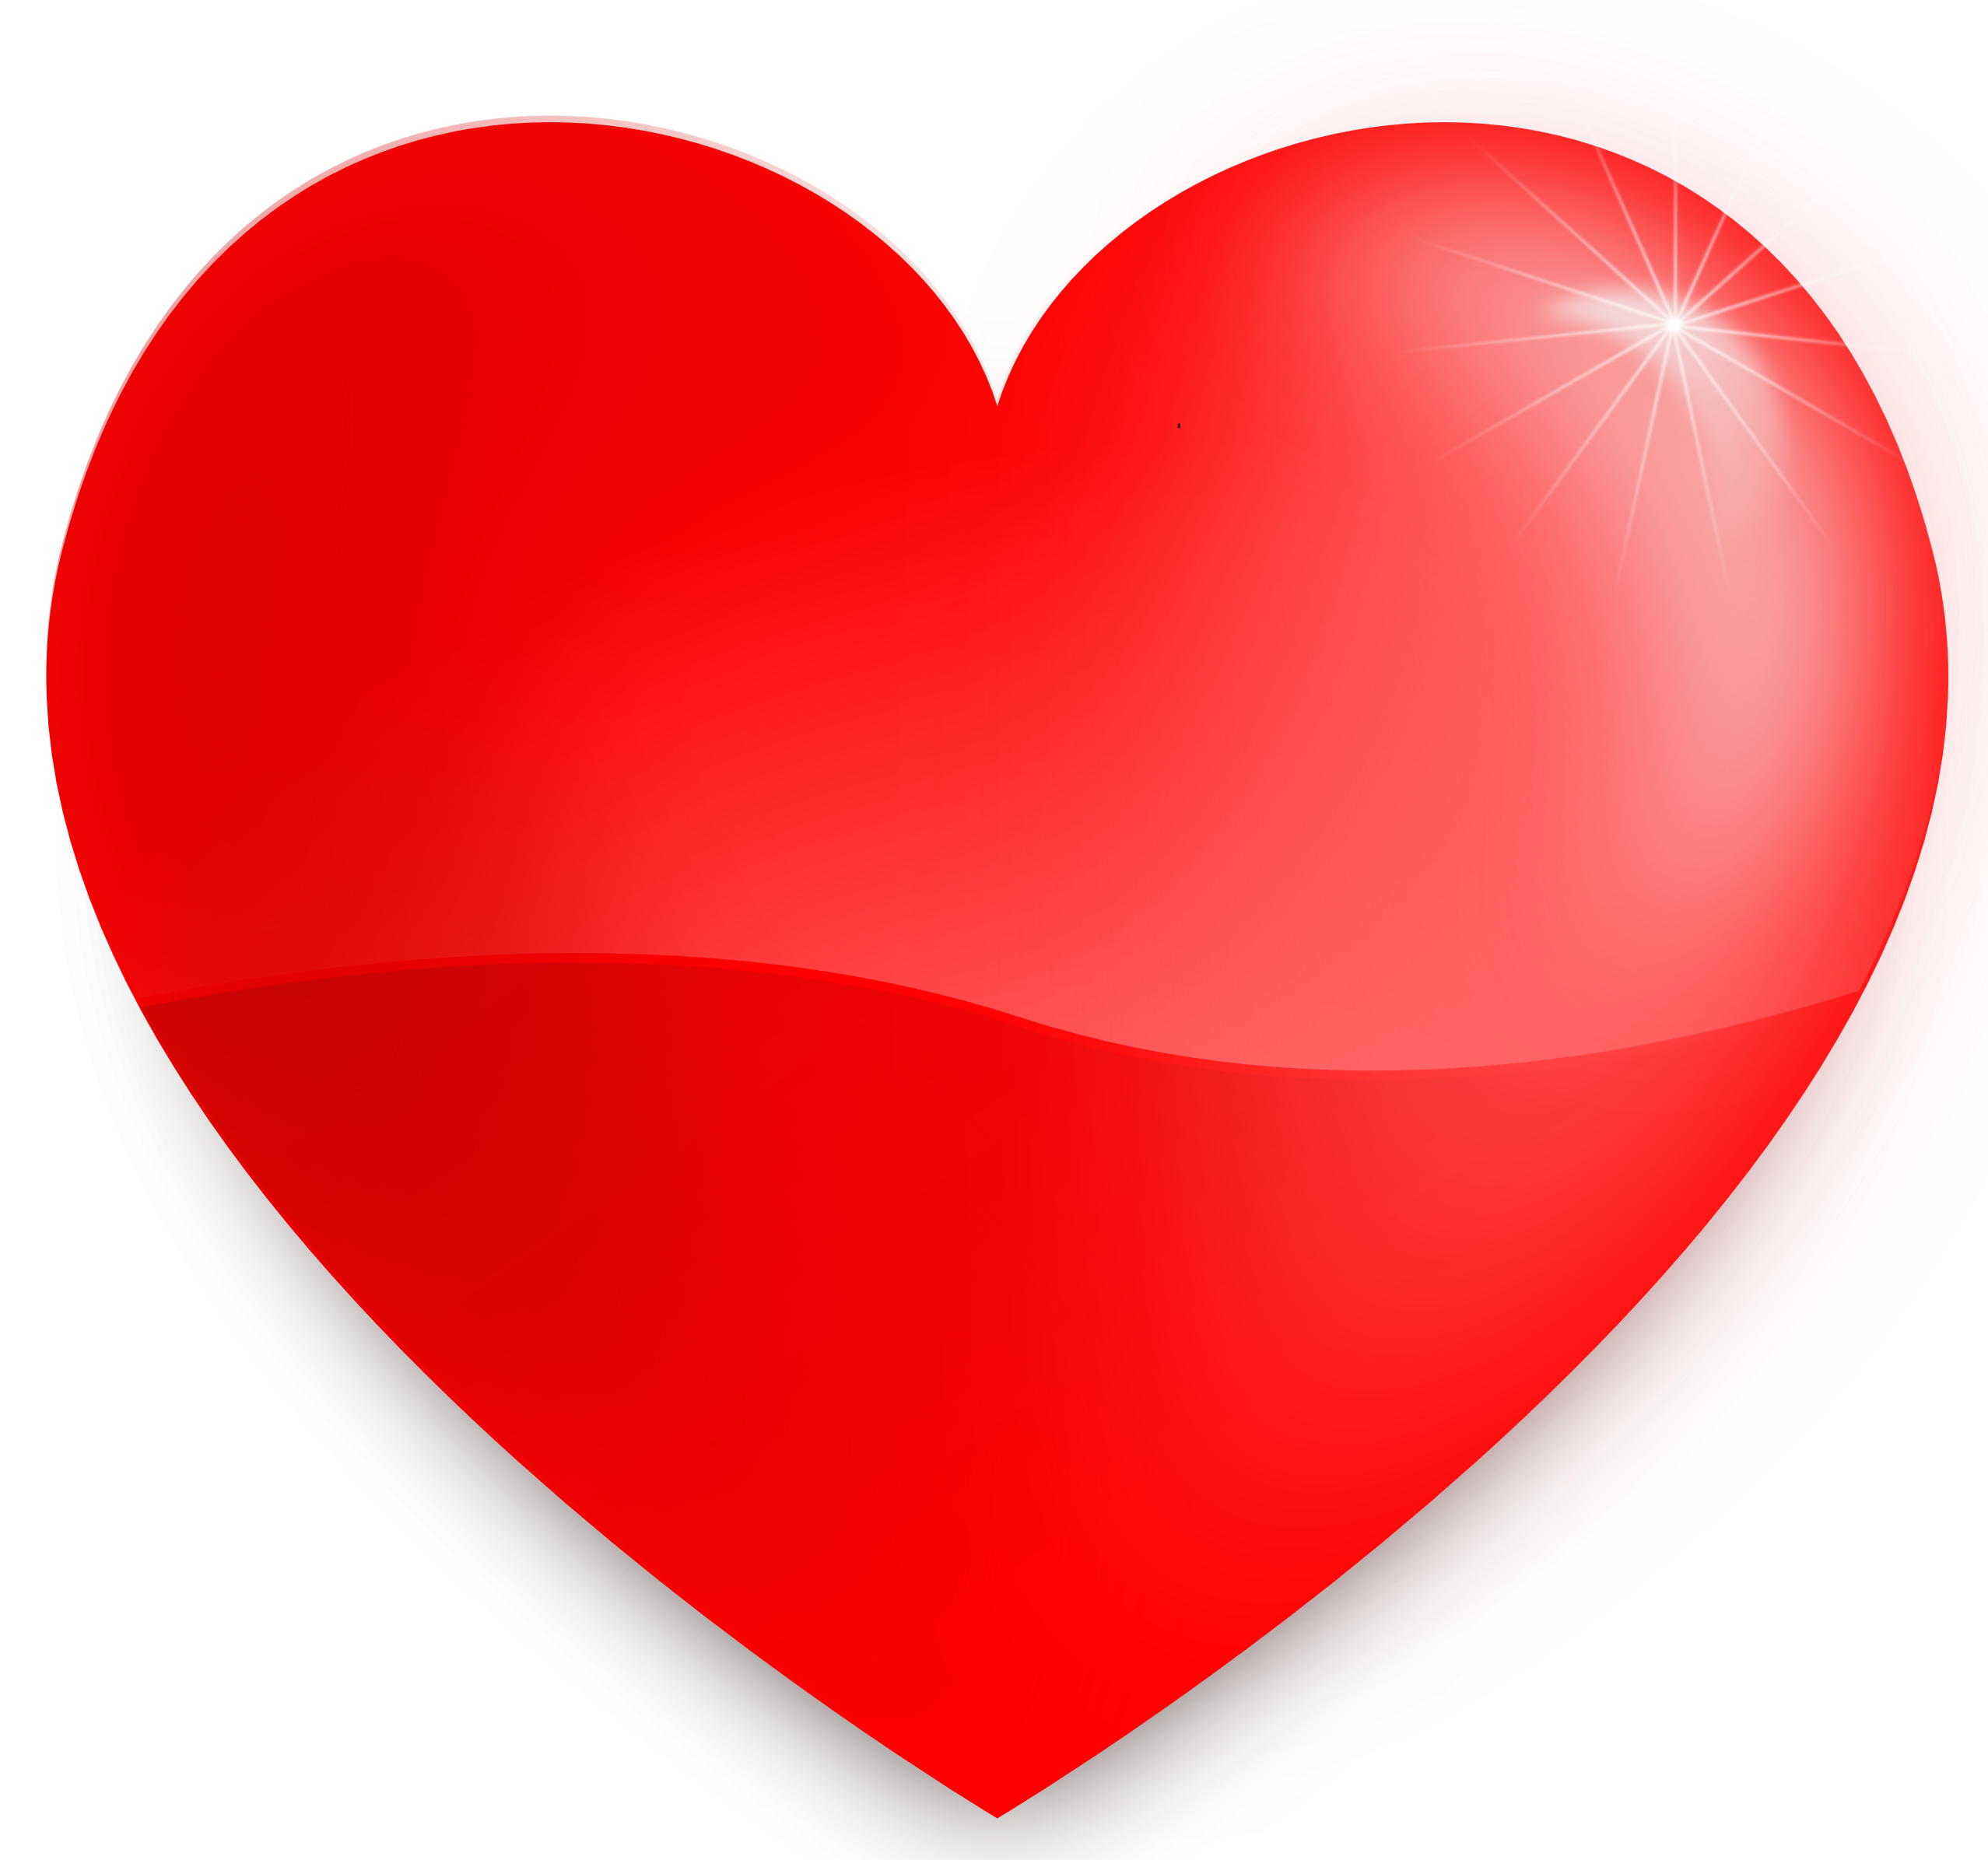 Png love . Number 1 clipart heart